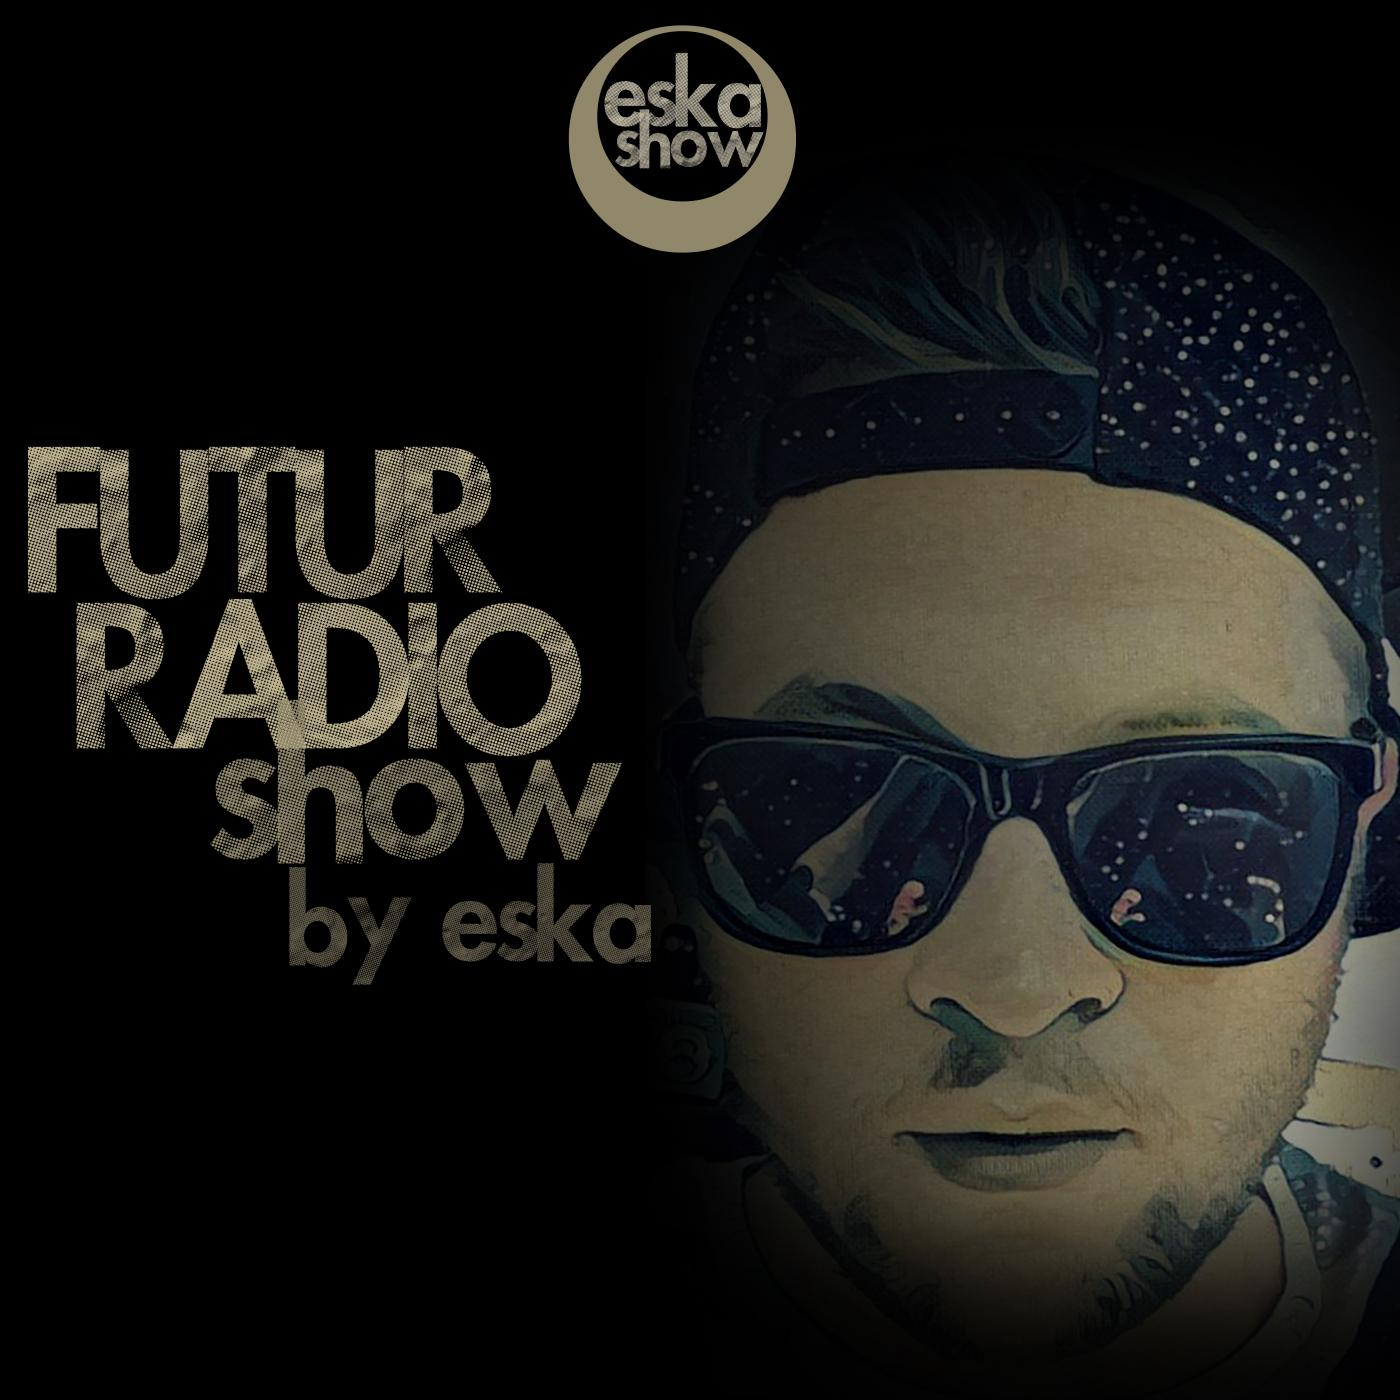 FUTUR RADIO SHOW by Eska